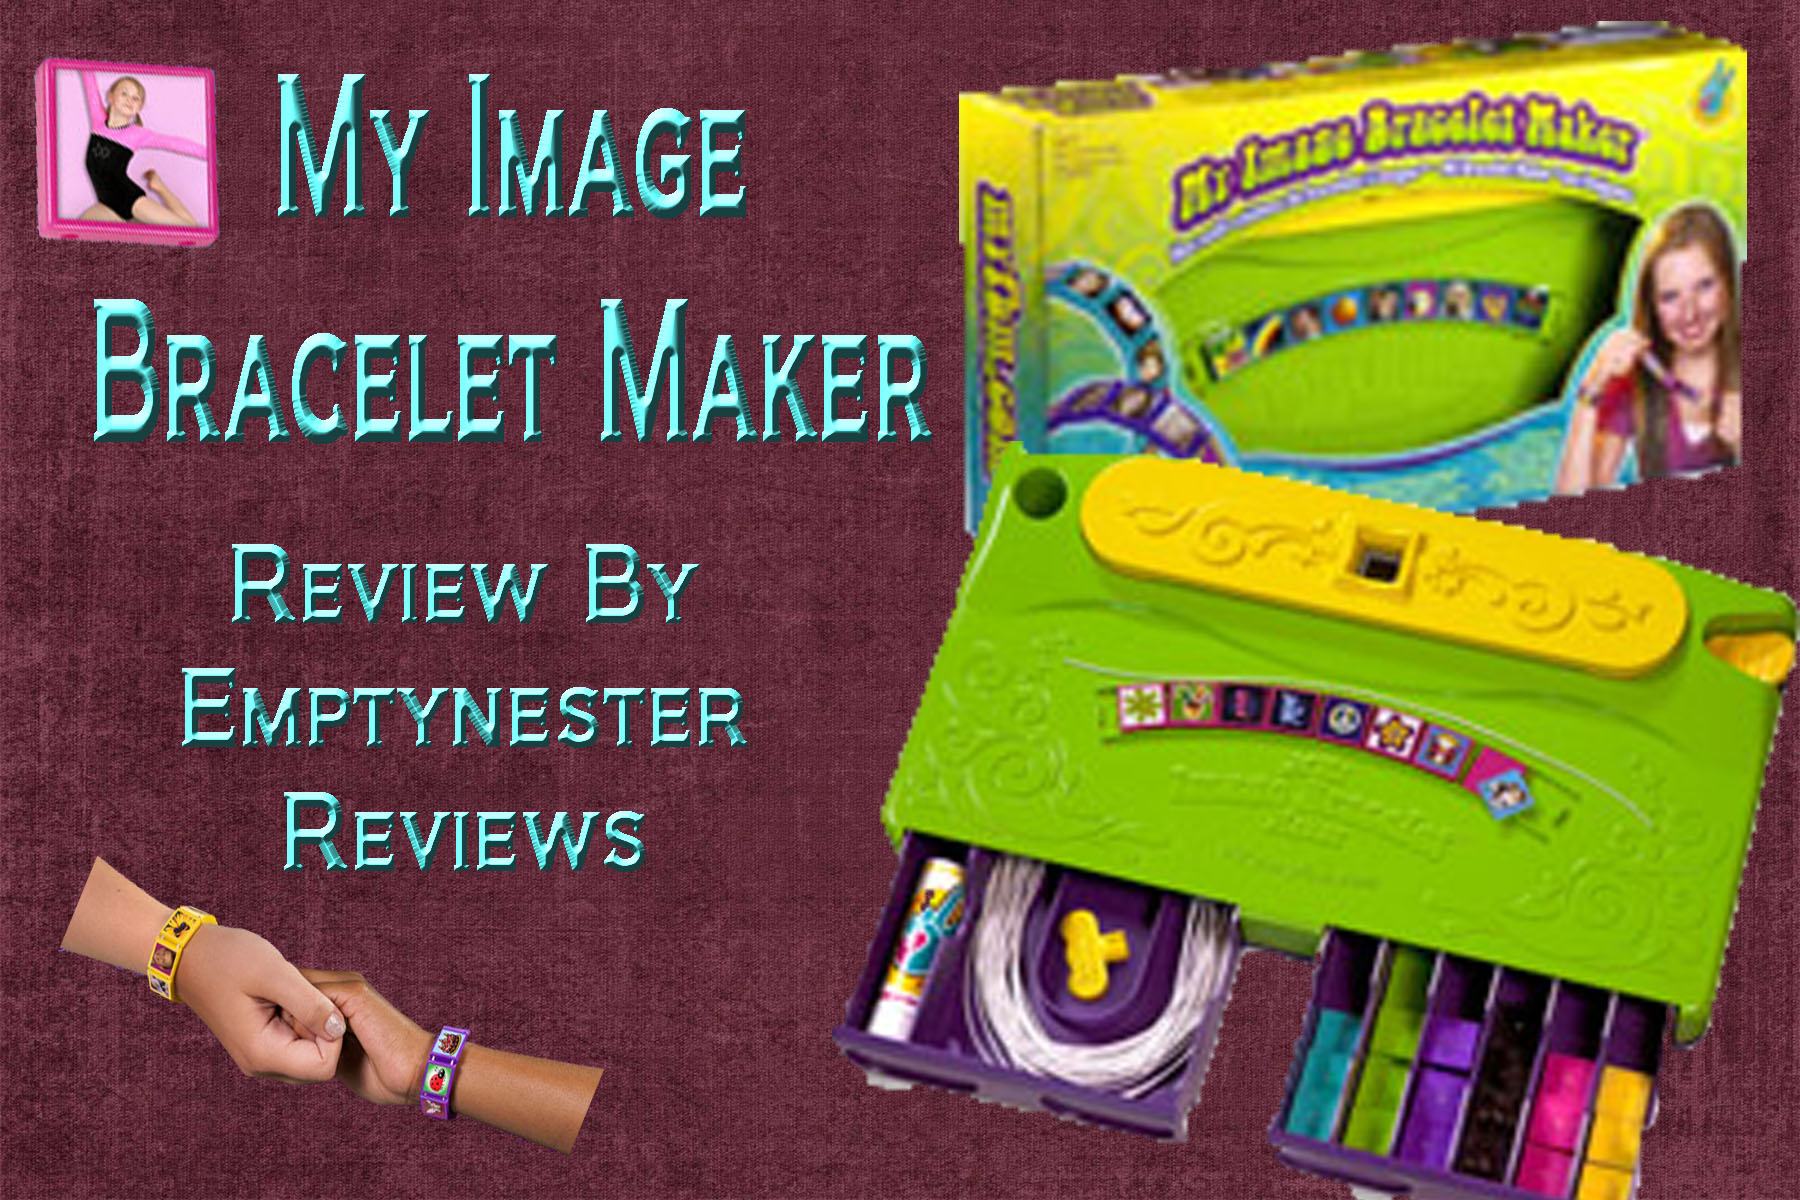 My Image Bracelet Maker review ~ Great Holiday Gift Idea